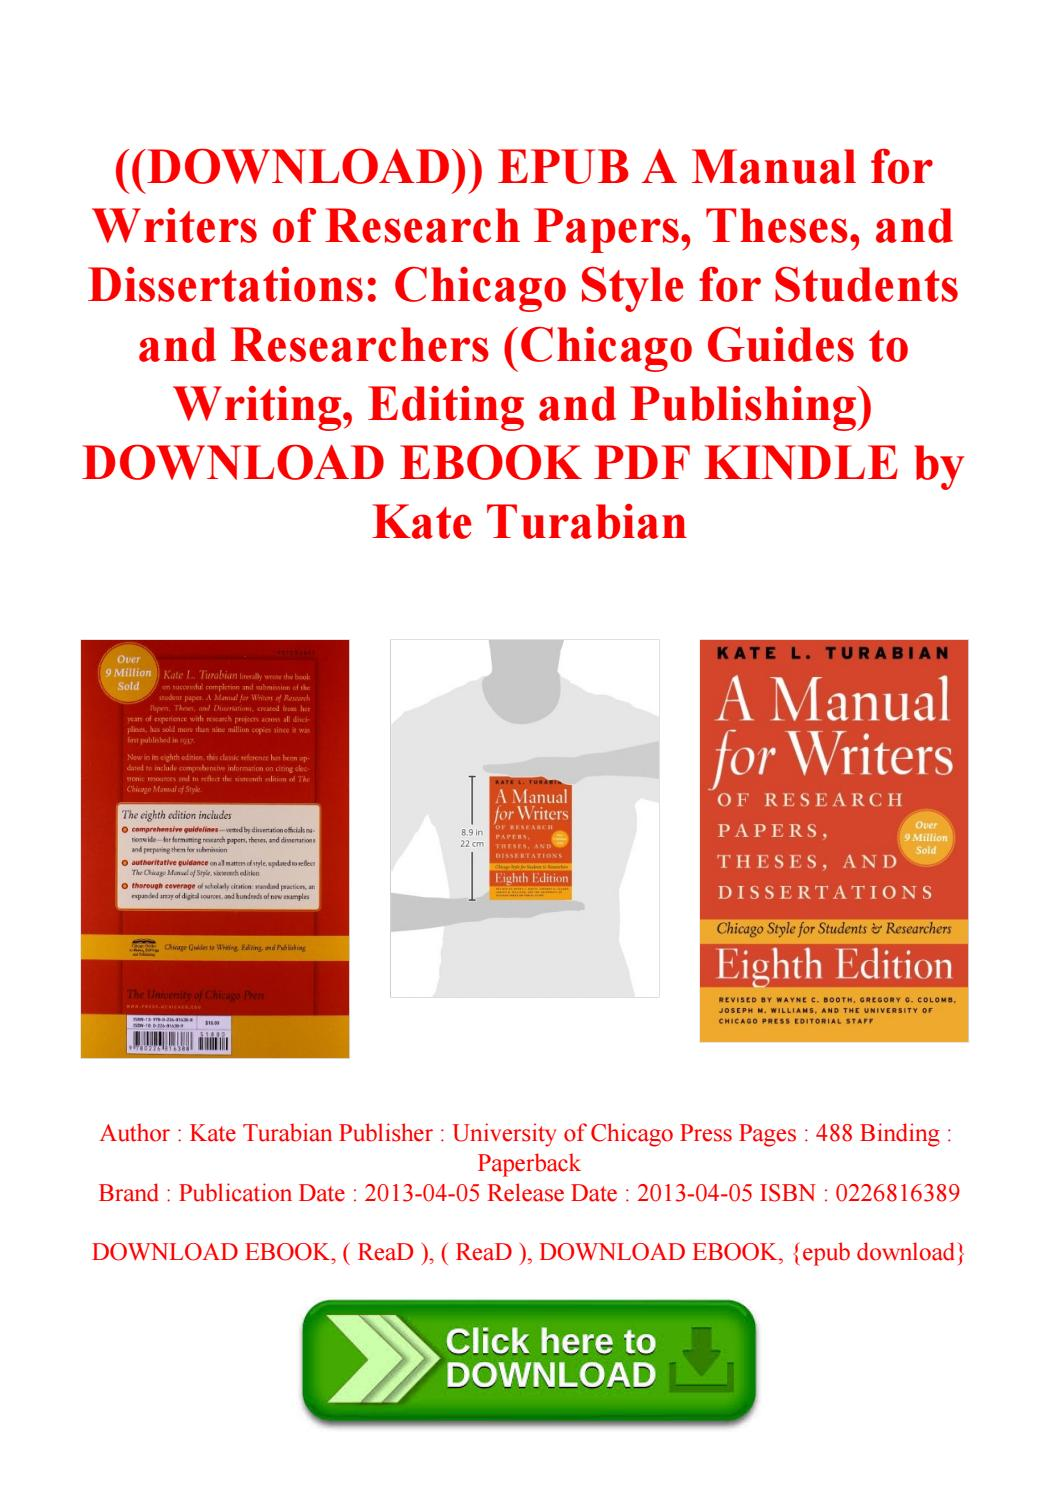 003 Page 1 Manual For Writers Of Researchs Theses And Dissertations Magnificent Research Papers A 8th Pdf Amazon Full